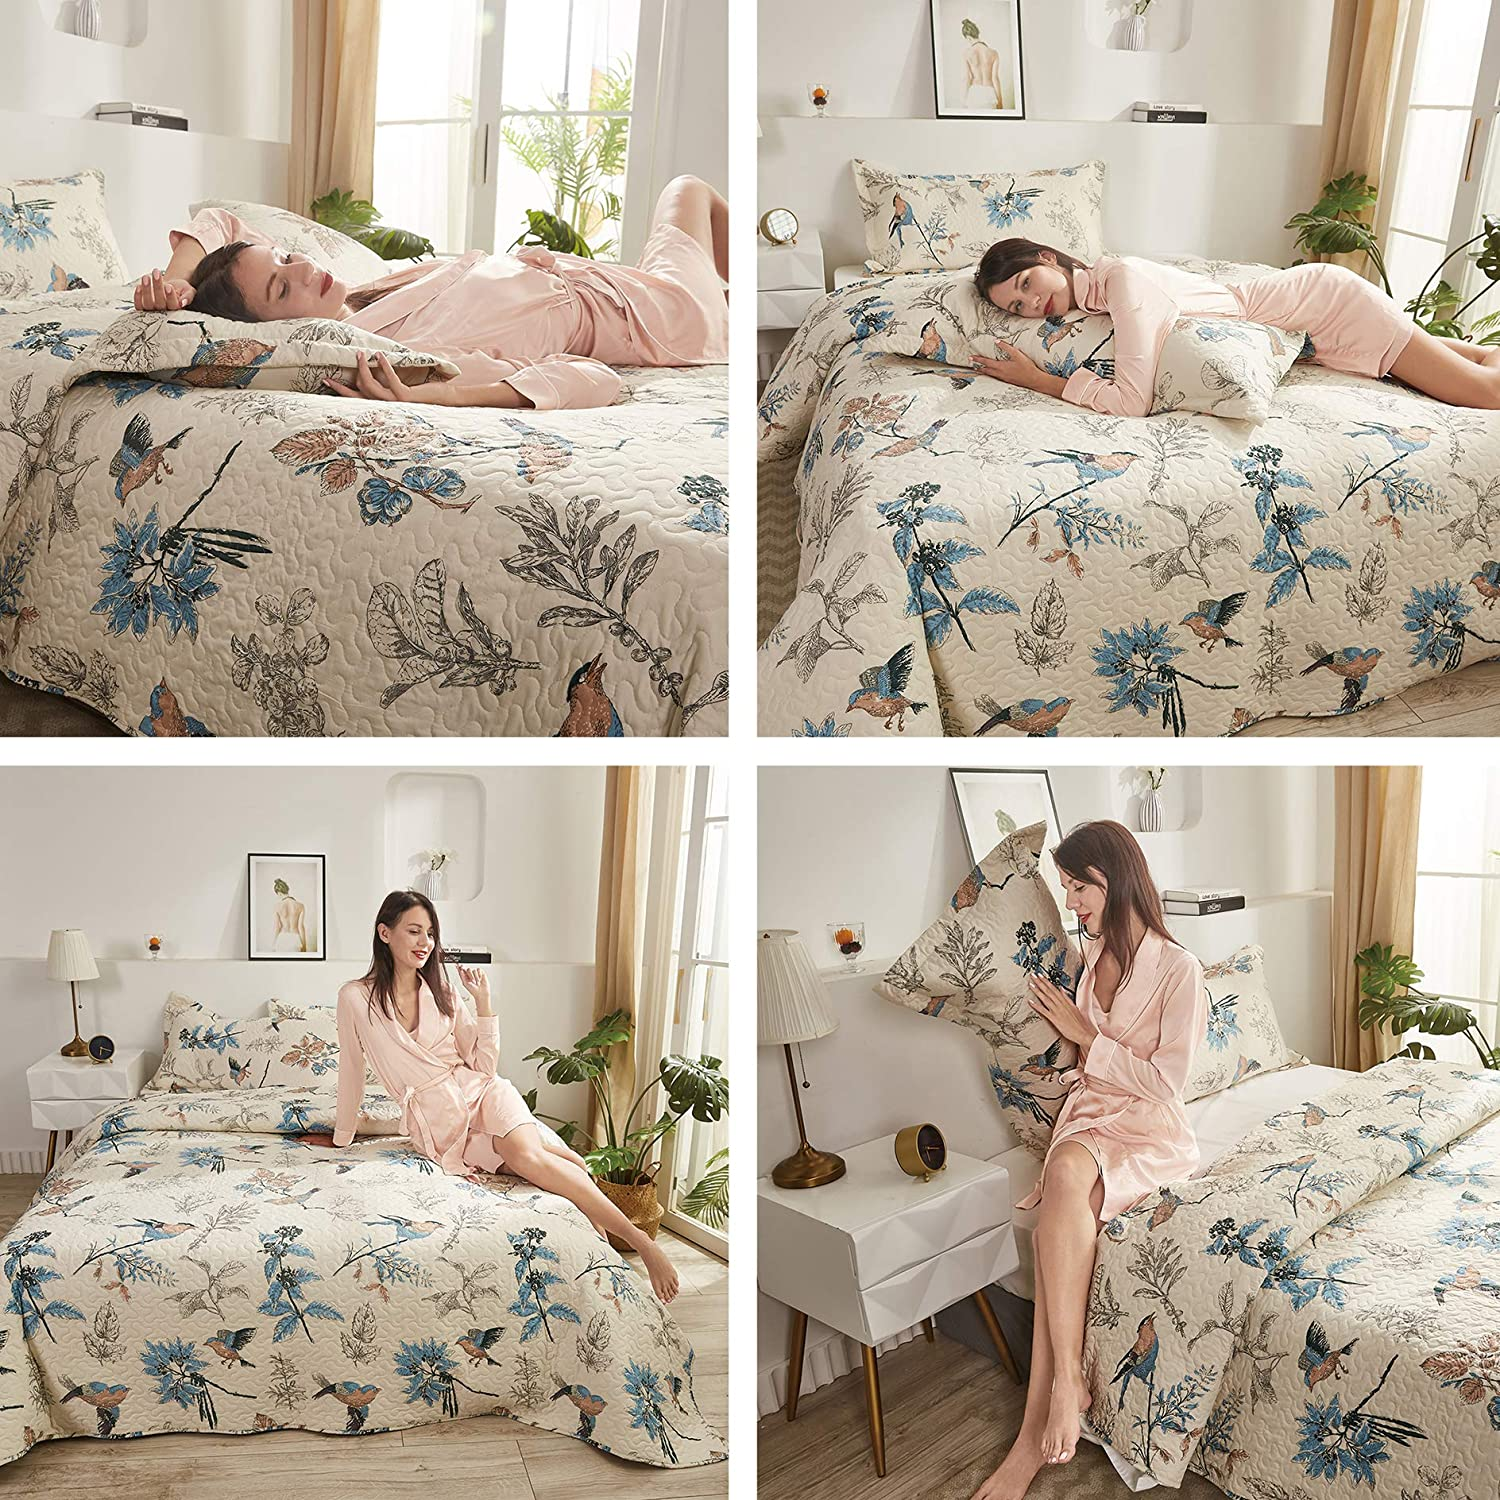 King Size Bedspread Set Jacquard Birds Floral Quilts Coverlet Set King with Queen Pillow Shams,Lightweight Bedspreads Home Decor Holiday Gift-Blue Cream